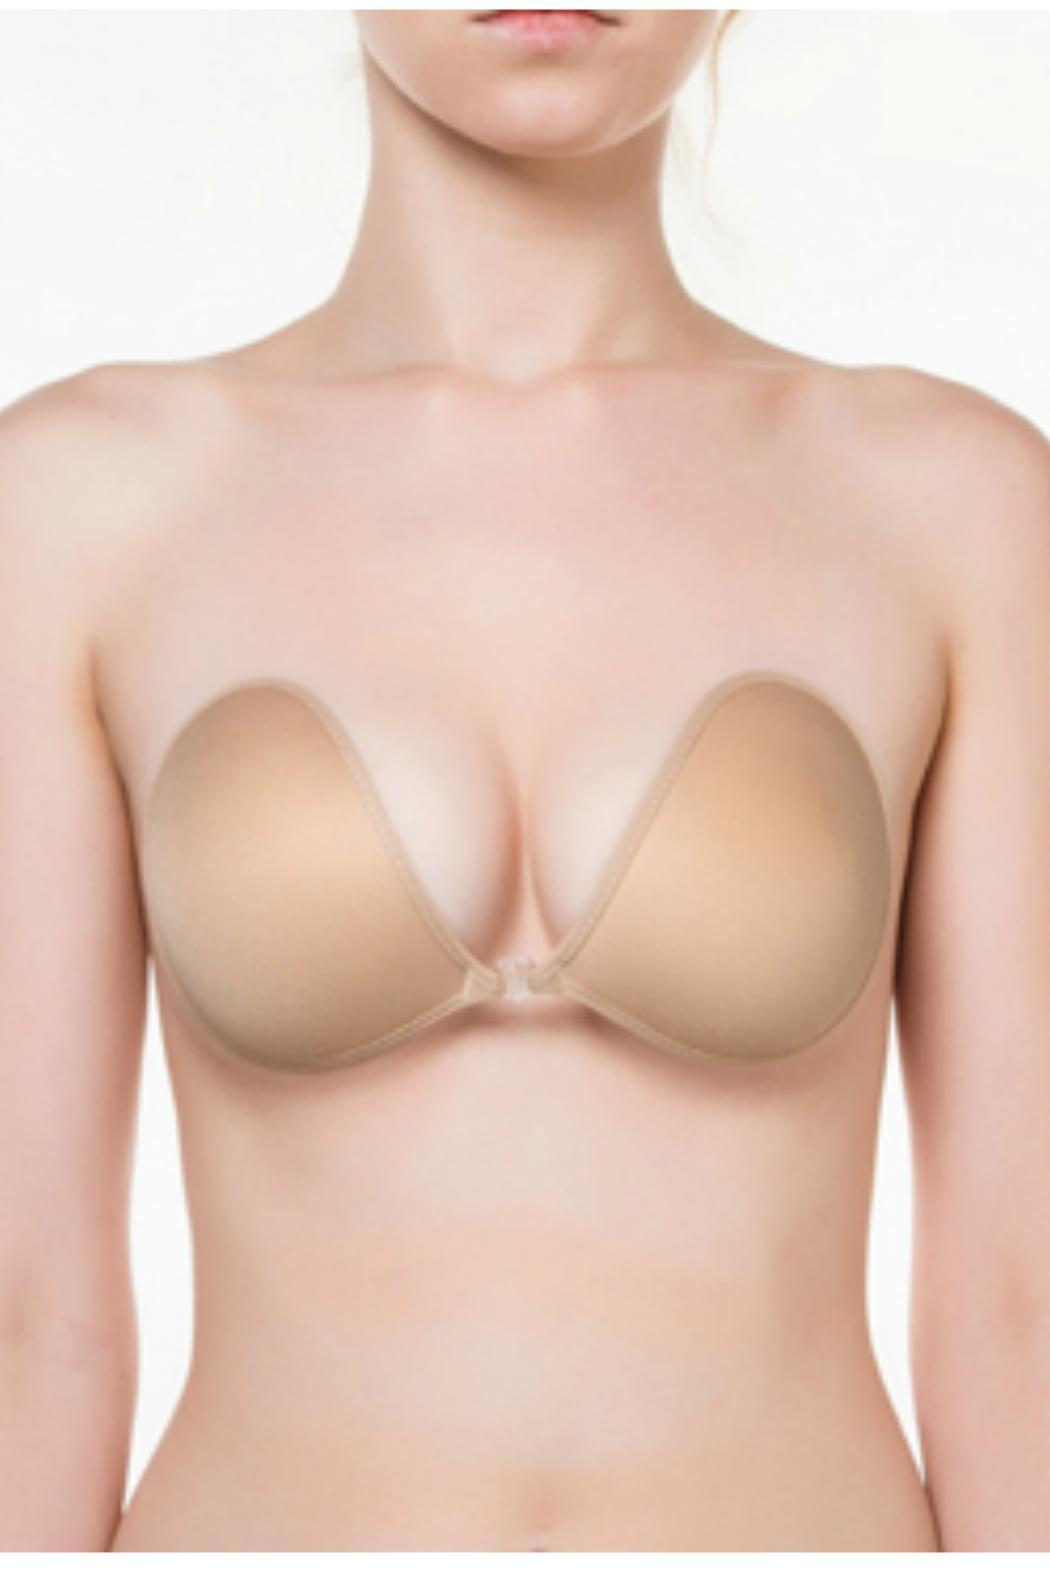 Nubra Feather-Lite